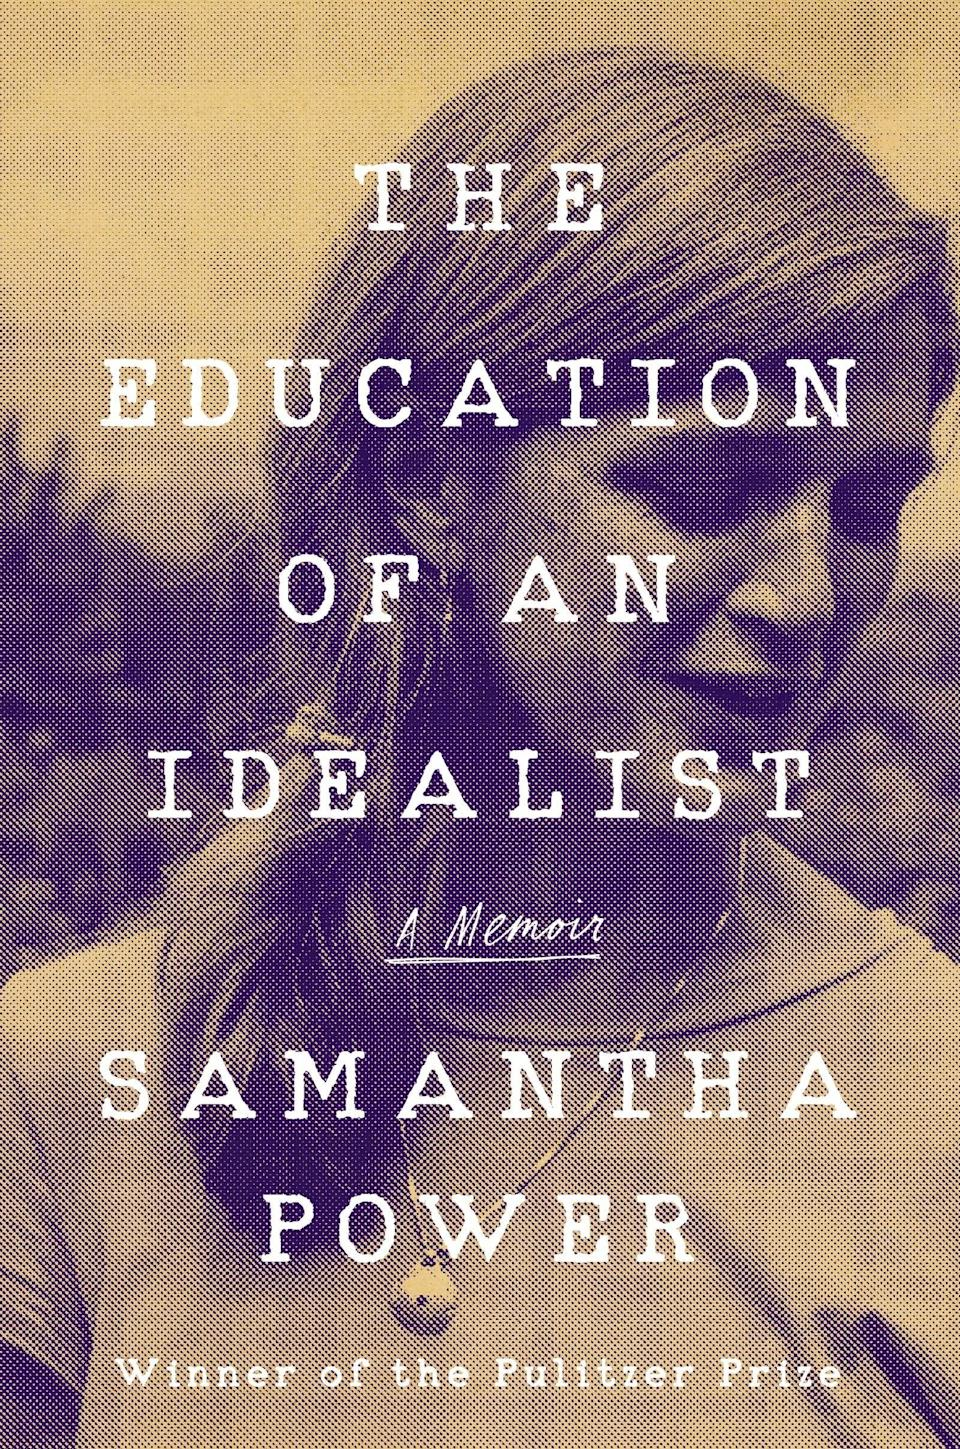 """Pulitzer Prize–winning writer and former ambassador to the United Nations Samantha Power's memoir tracks her journey from her childhood in Dublin to ending up in President Obama's cabinet. With a particular focus on the Obama era, Power (who was a <em>Glamour</em> <a href=""""https://www.glamour.com/story/samantha-power?mbid=synd_yahoo_rss"""" rel=""""nofollow noopener"""" target=""""_blank"""" data-ylk=""""slk:Woman of the Year in 2014"""" class=""""link rapid-noclick-resp"""">Woman of the Year in 2014</a>) looks back on how she fought to put her ideals into action and refused to be hardened by politics as usual."""